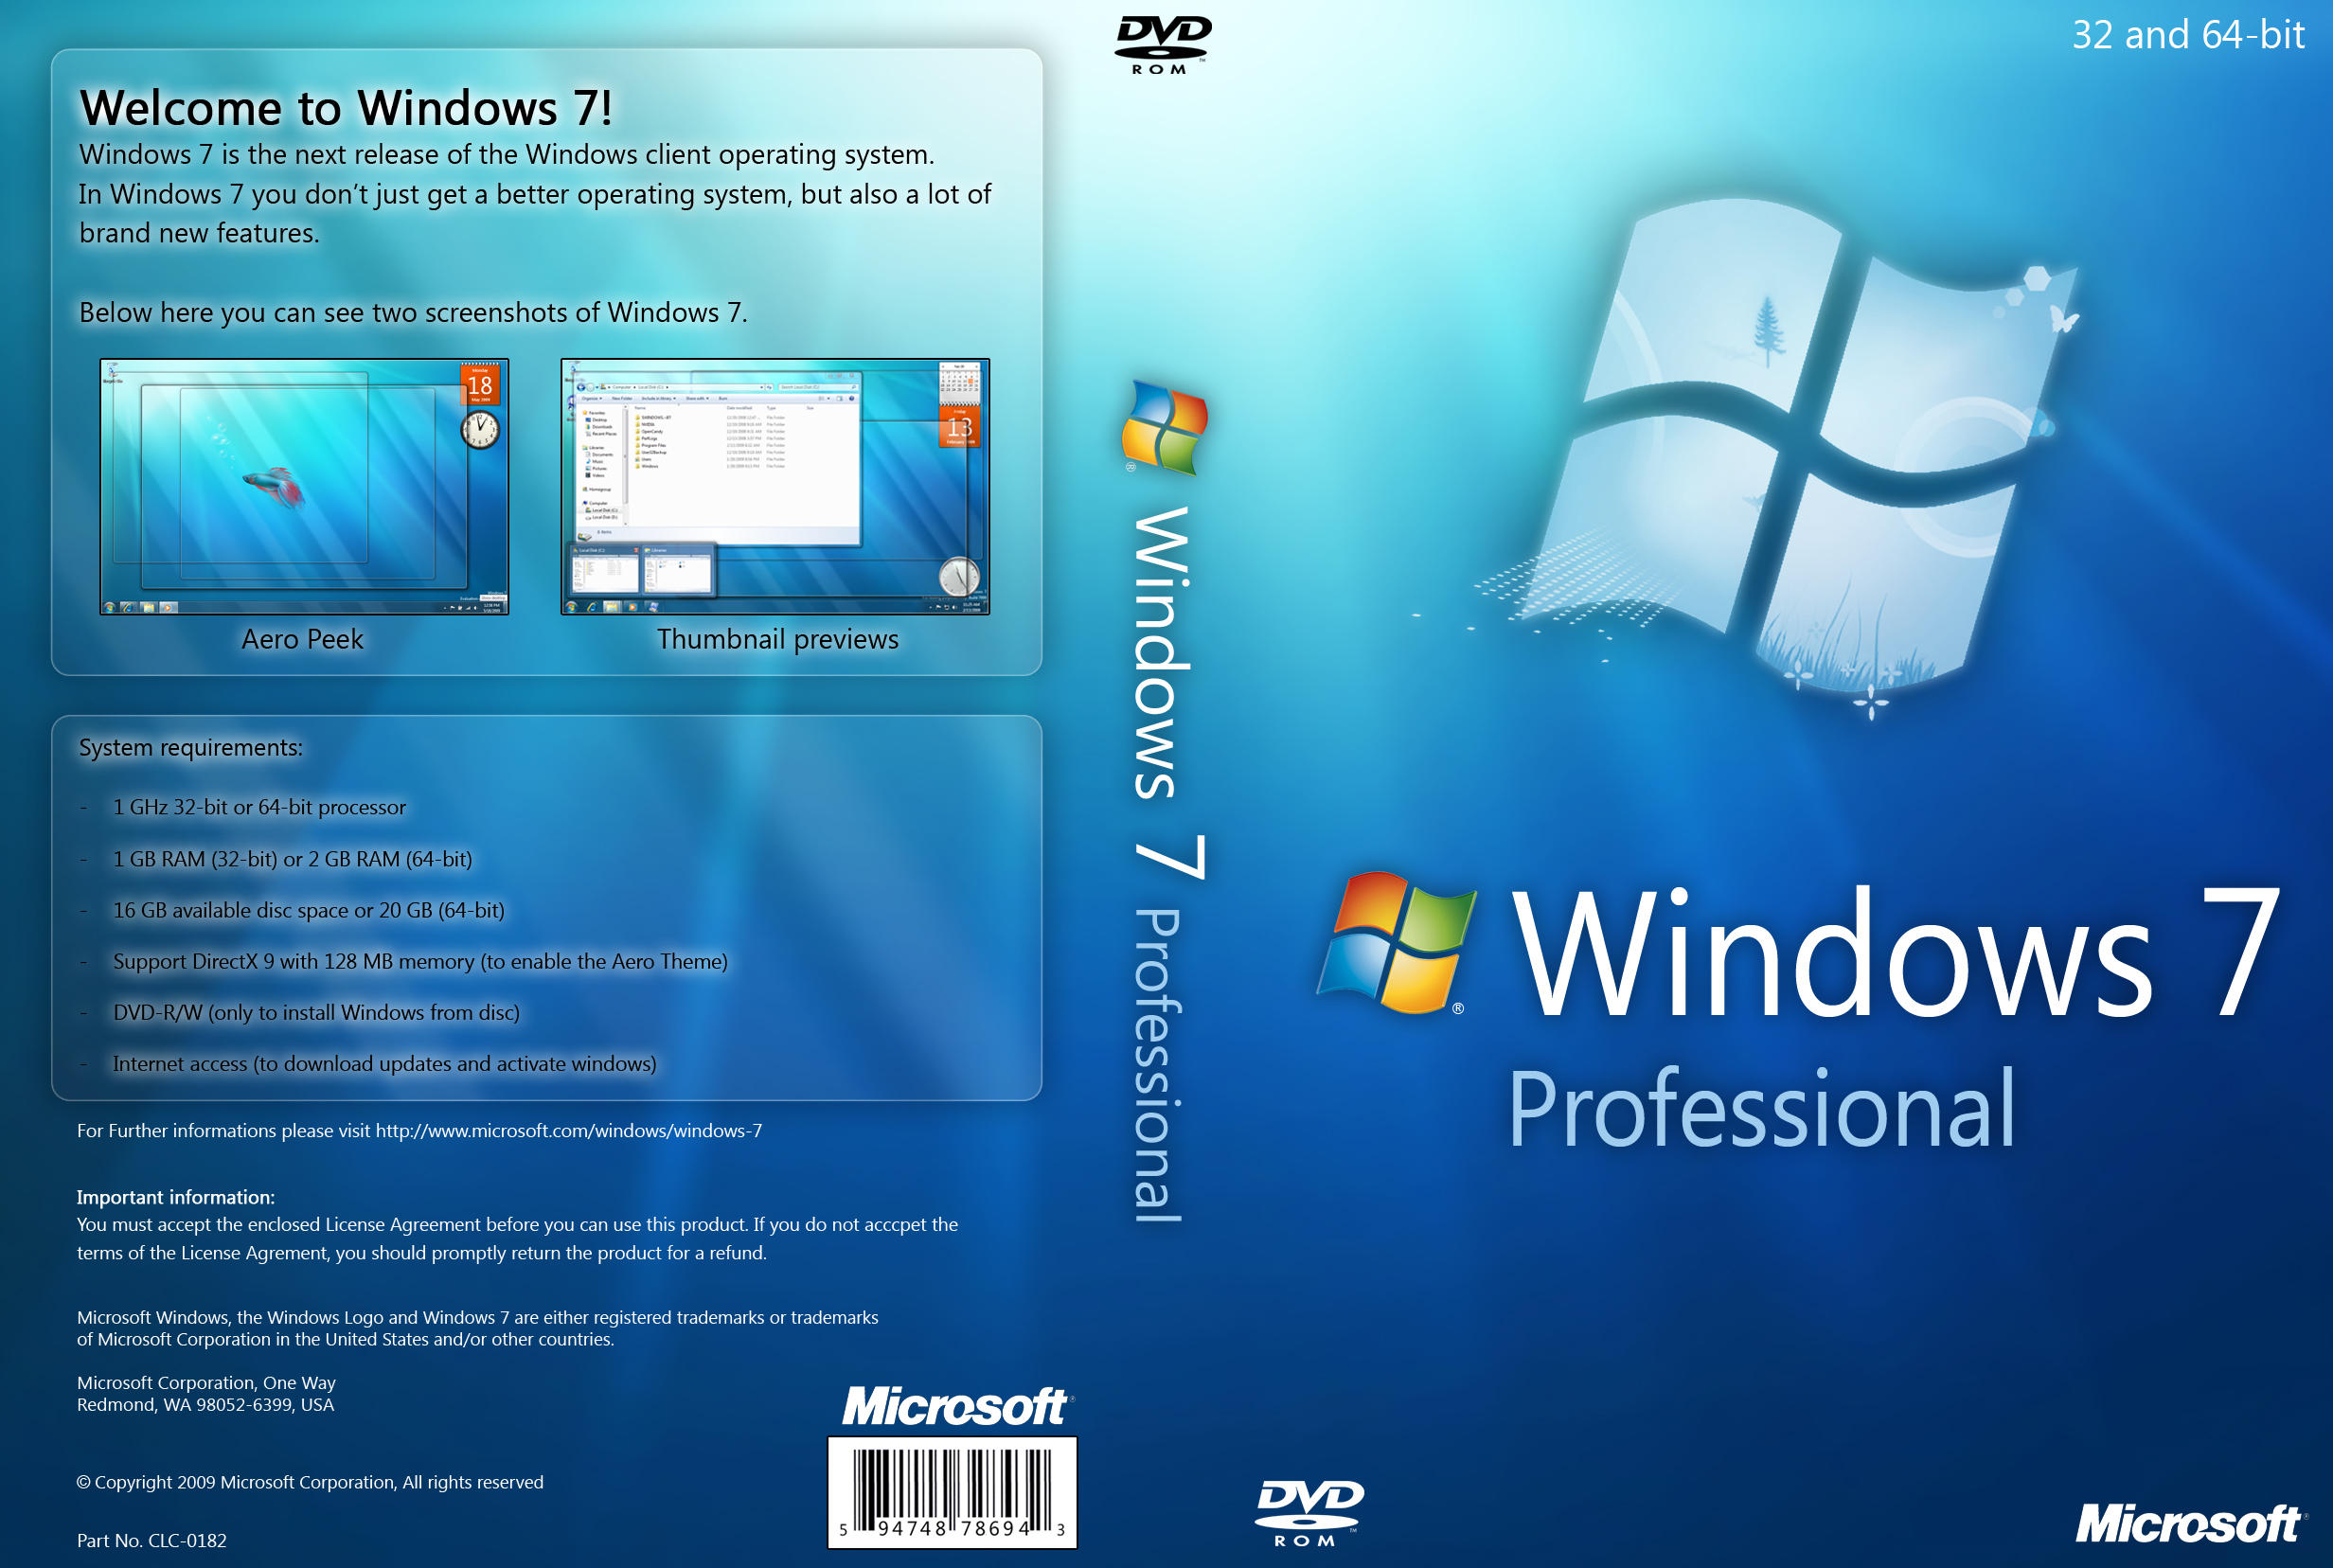 Windows 7 professional dvd by yaxxe on deviantart for Windows 7 bureau